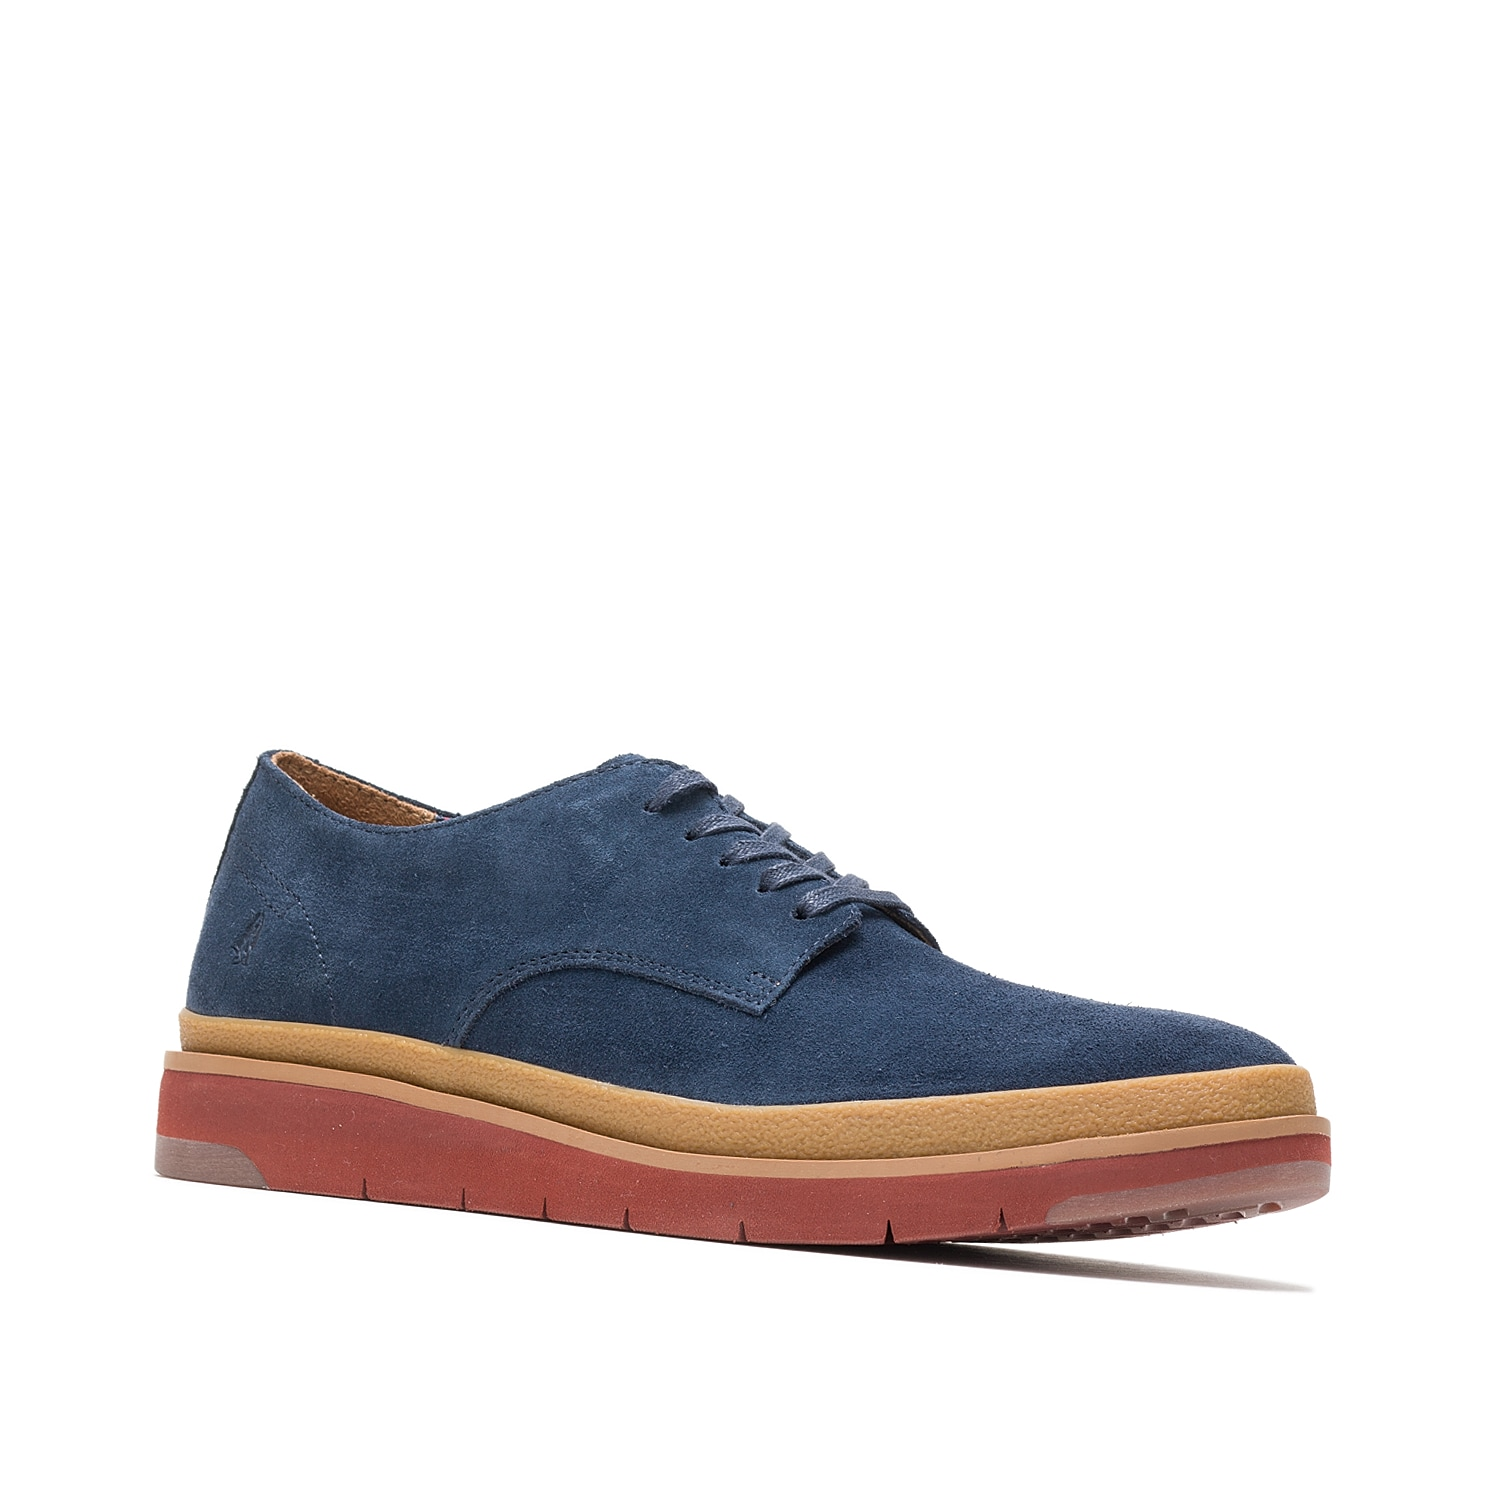 Tailored style gets a sporty upgrade with the Caleb oxford from Hush Puppies. An athletic outsole and soft suede upper make this lace-up a pair to remember.